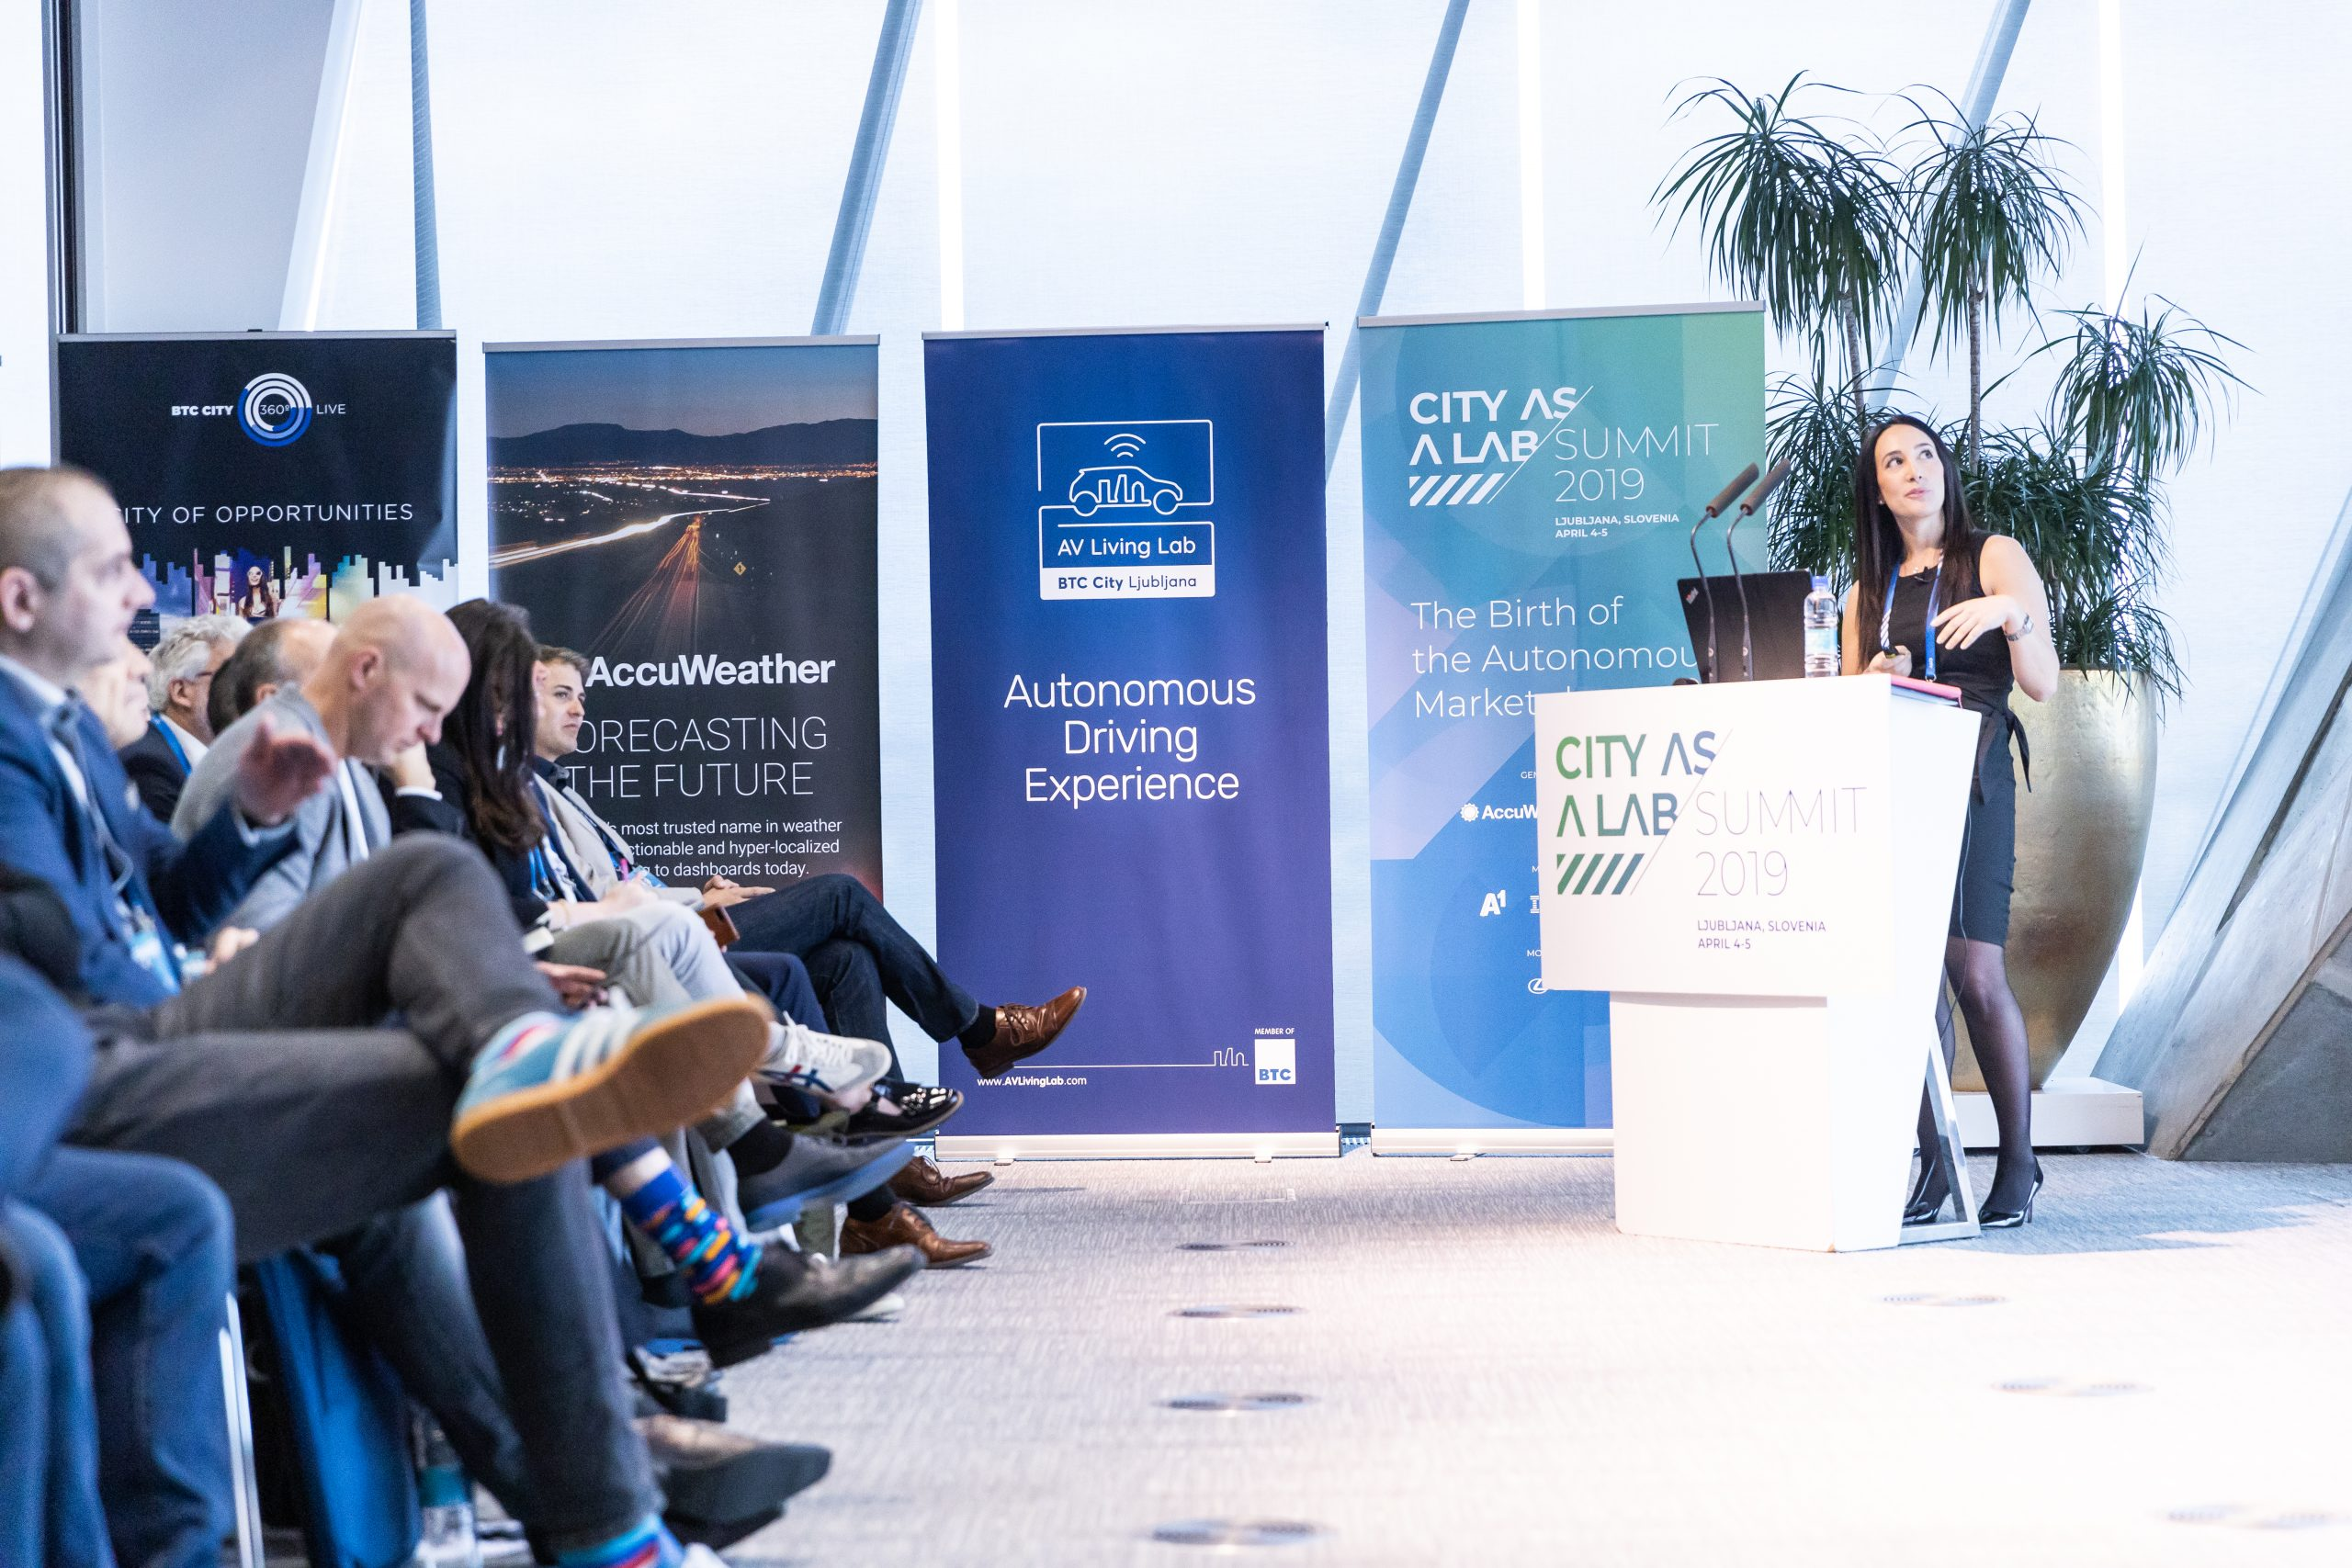 City as a Lab Summit: Mobility 2019